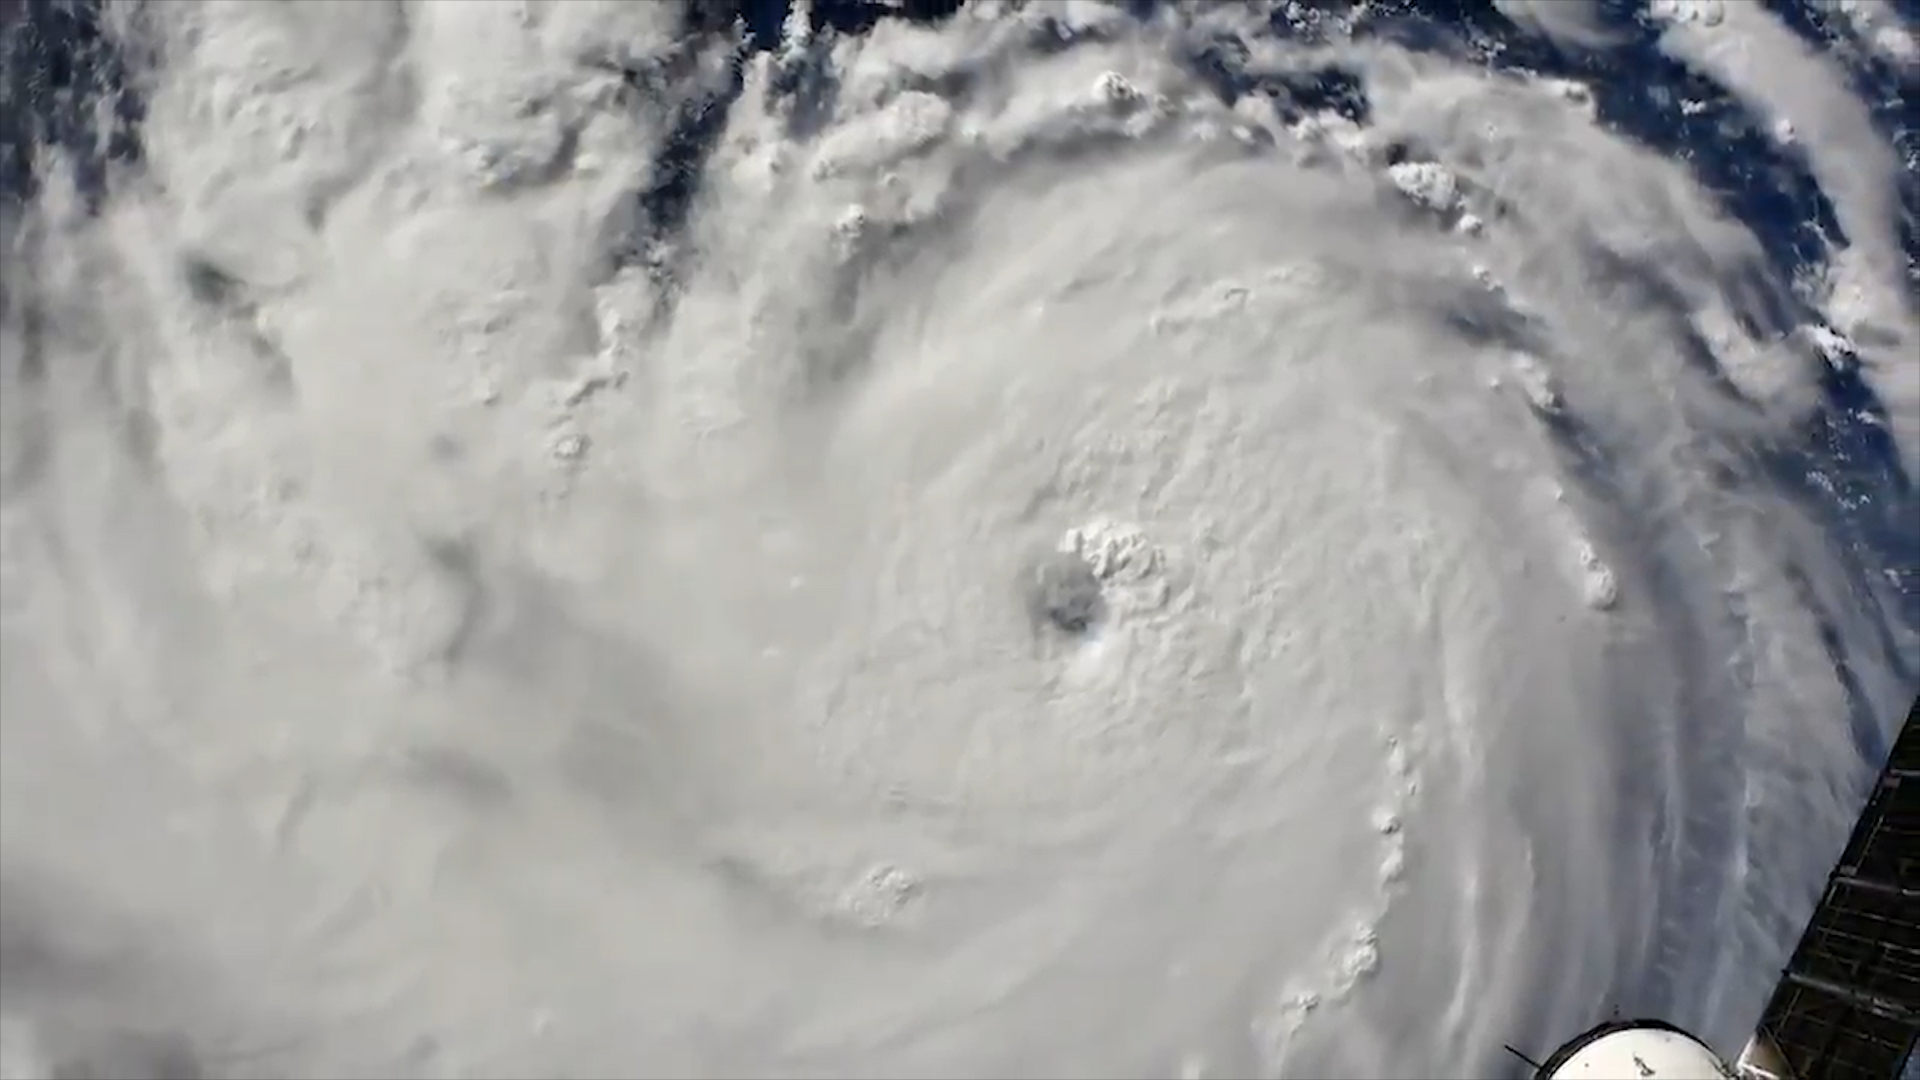 Astronauts had to use super wide-angle lens to photograph Hurricane Florence because it's so huge